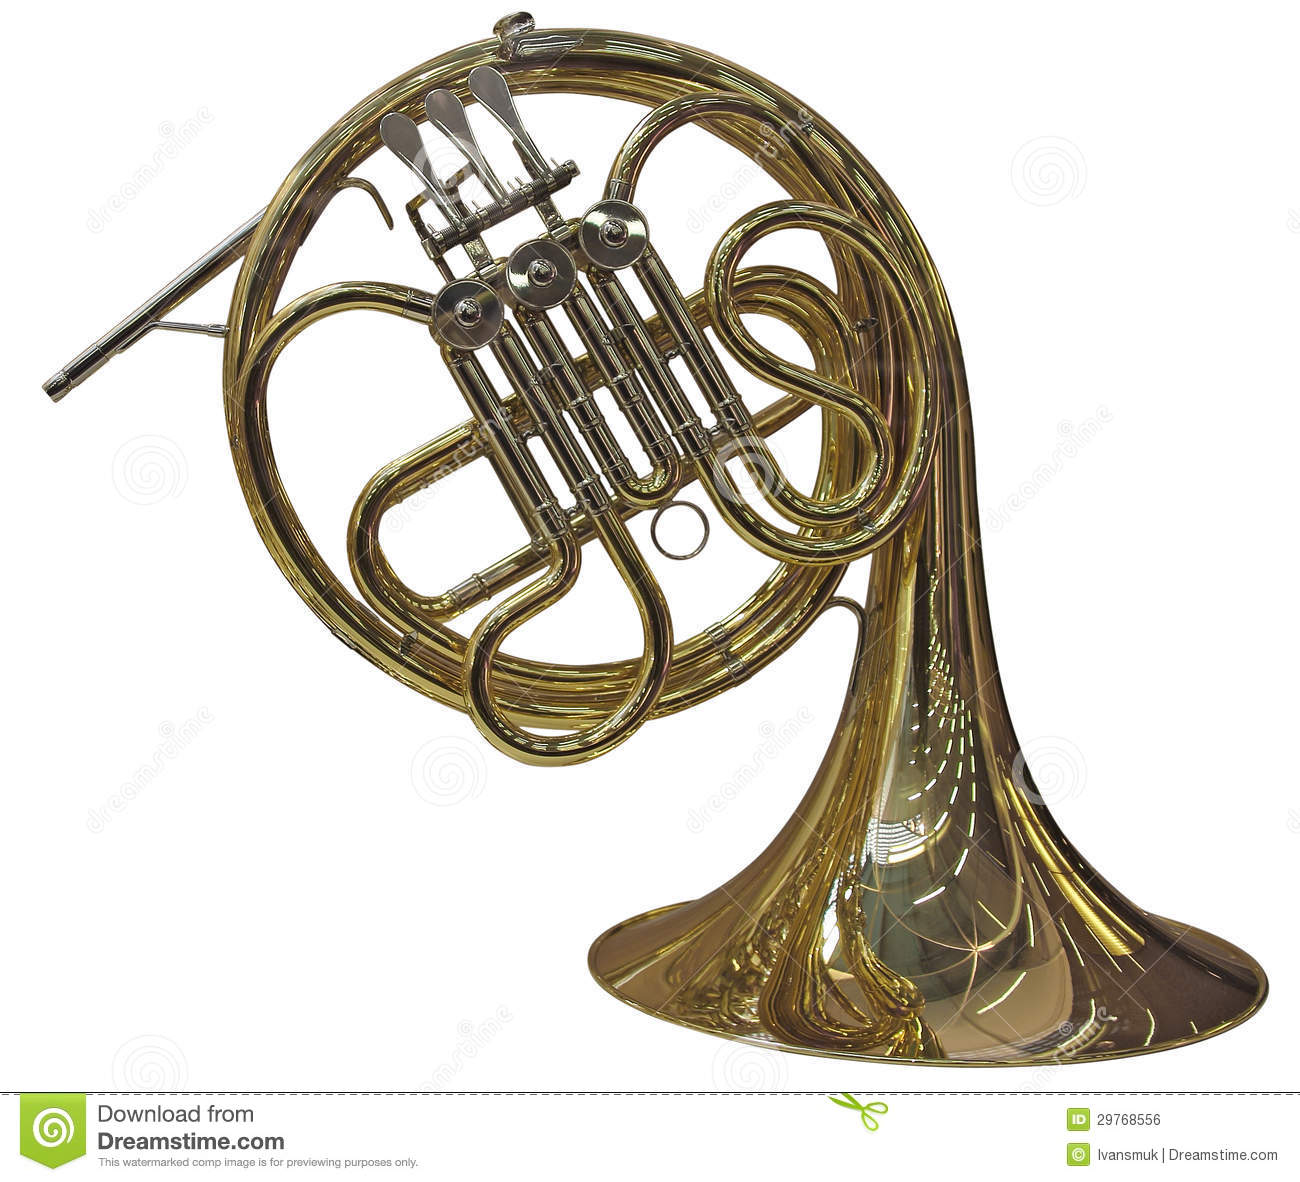 French Horn Royalty Free Stock Image - Image: 29768556